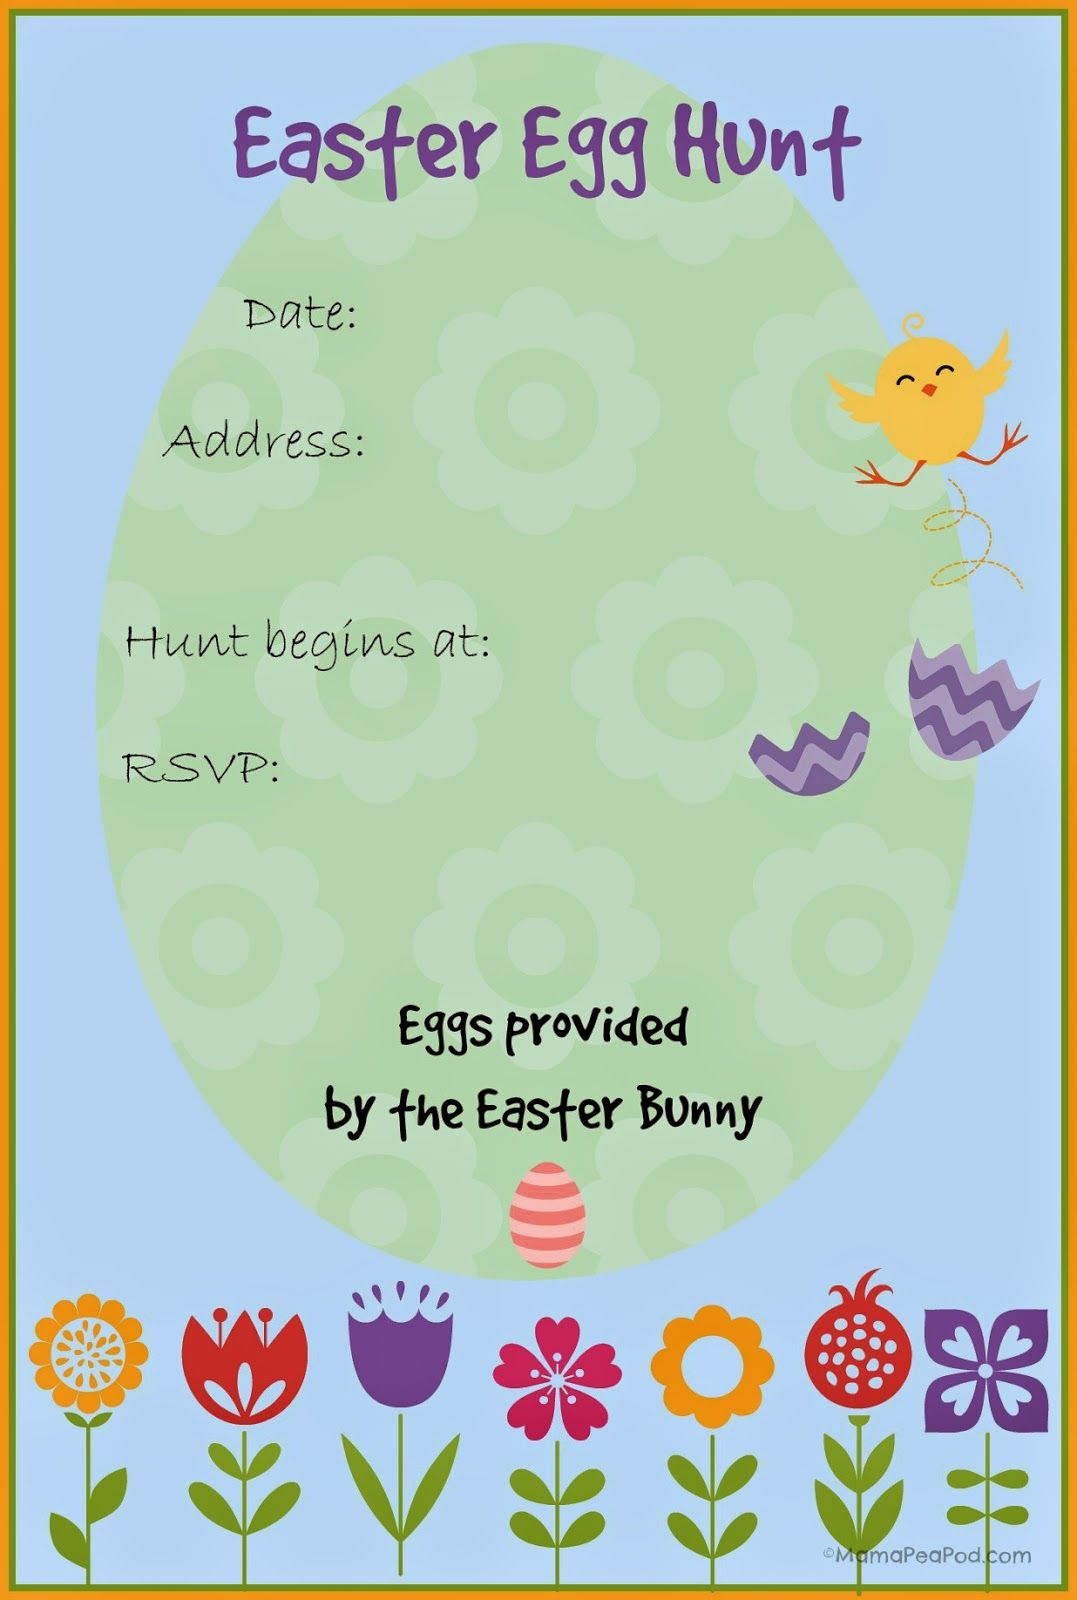 Free Printable Easter Egg Hunt Invitation